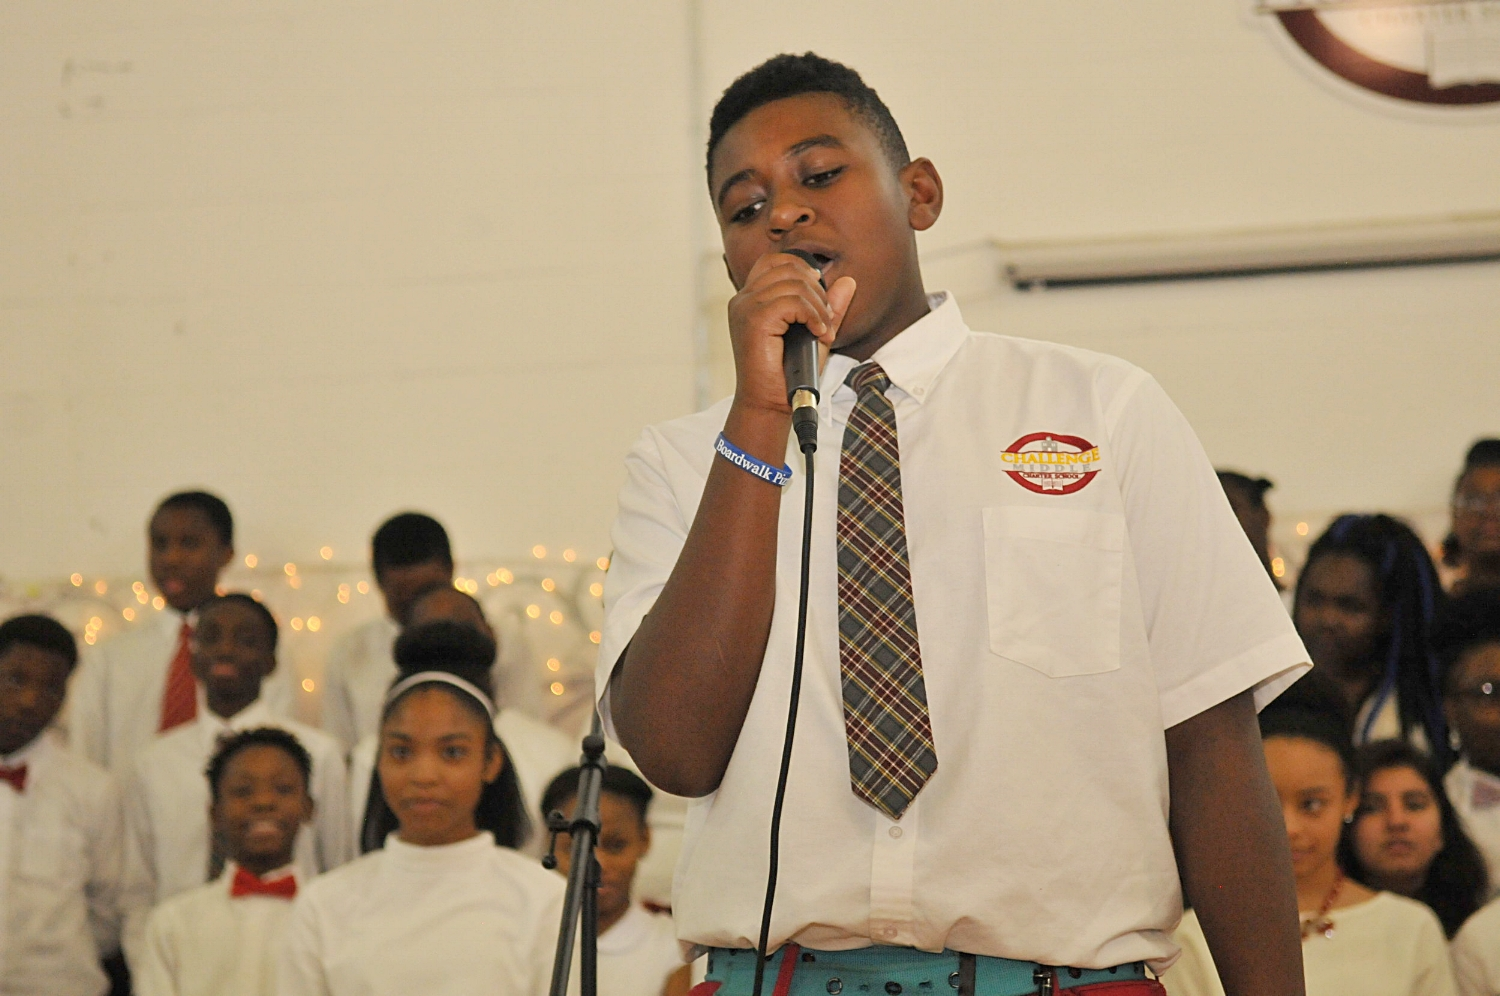 CCMS Students have opportunities to perform in regular shows and assemblies.